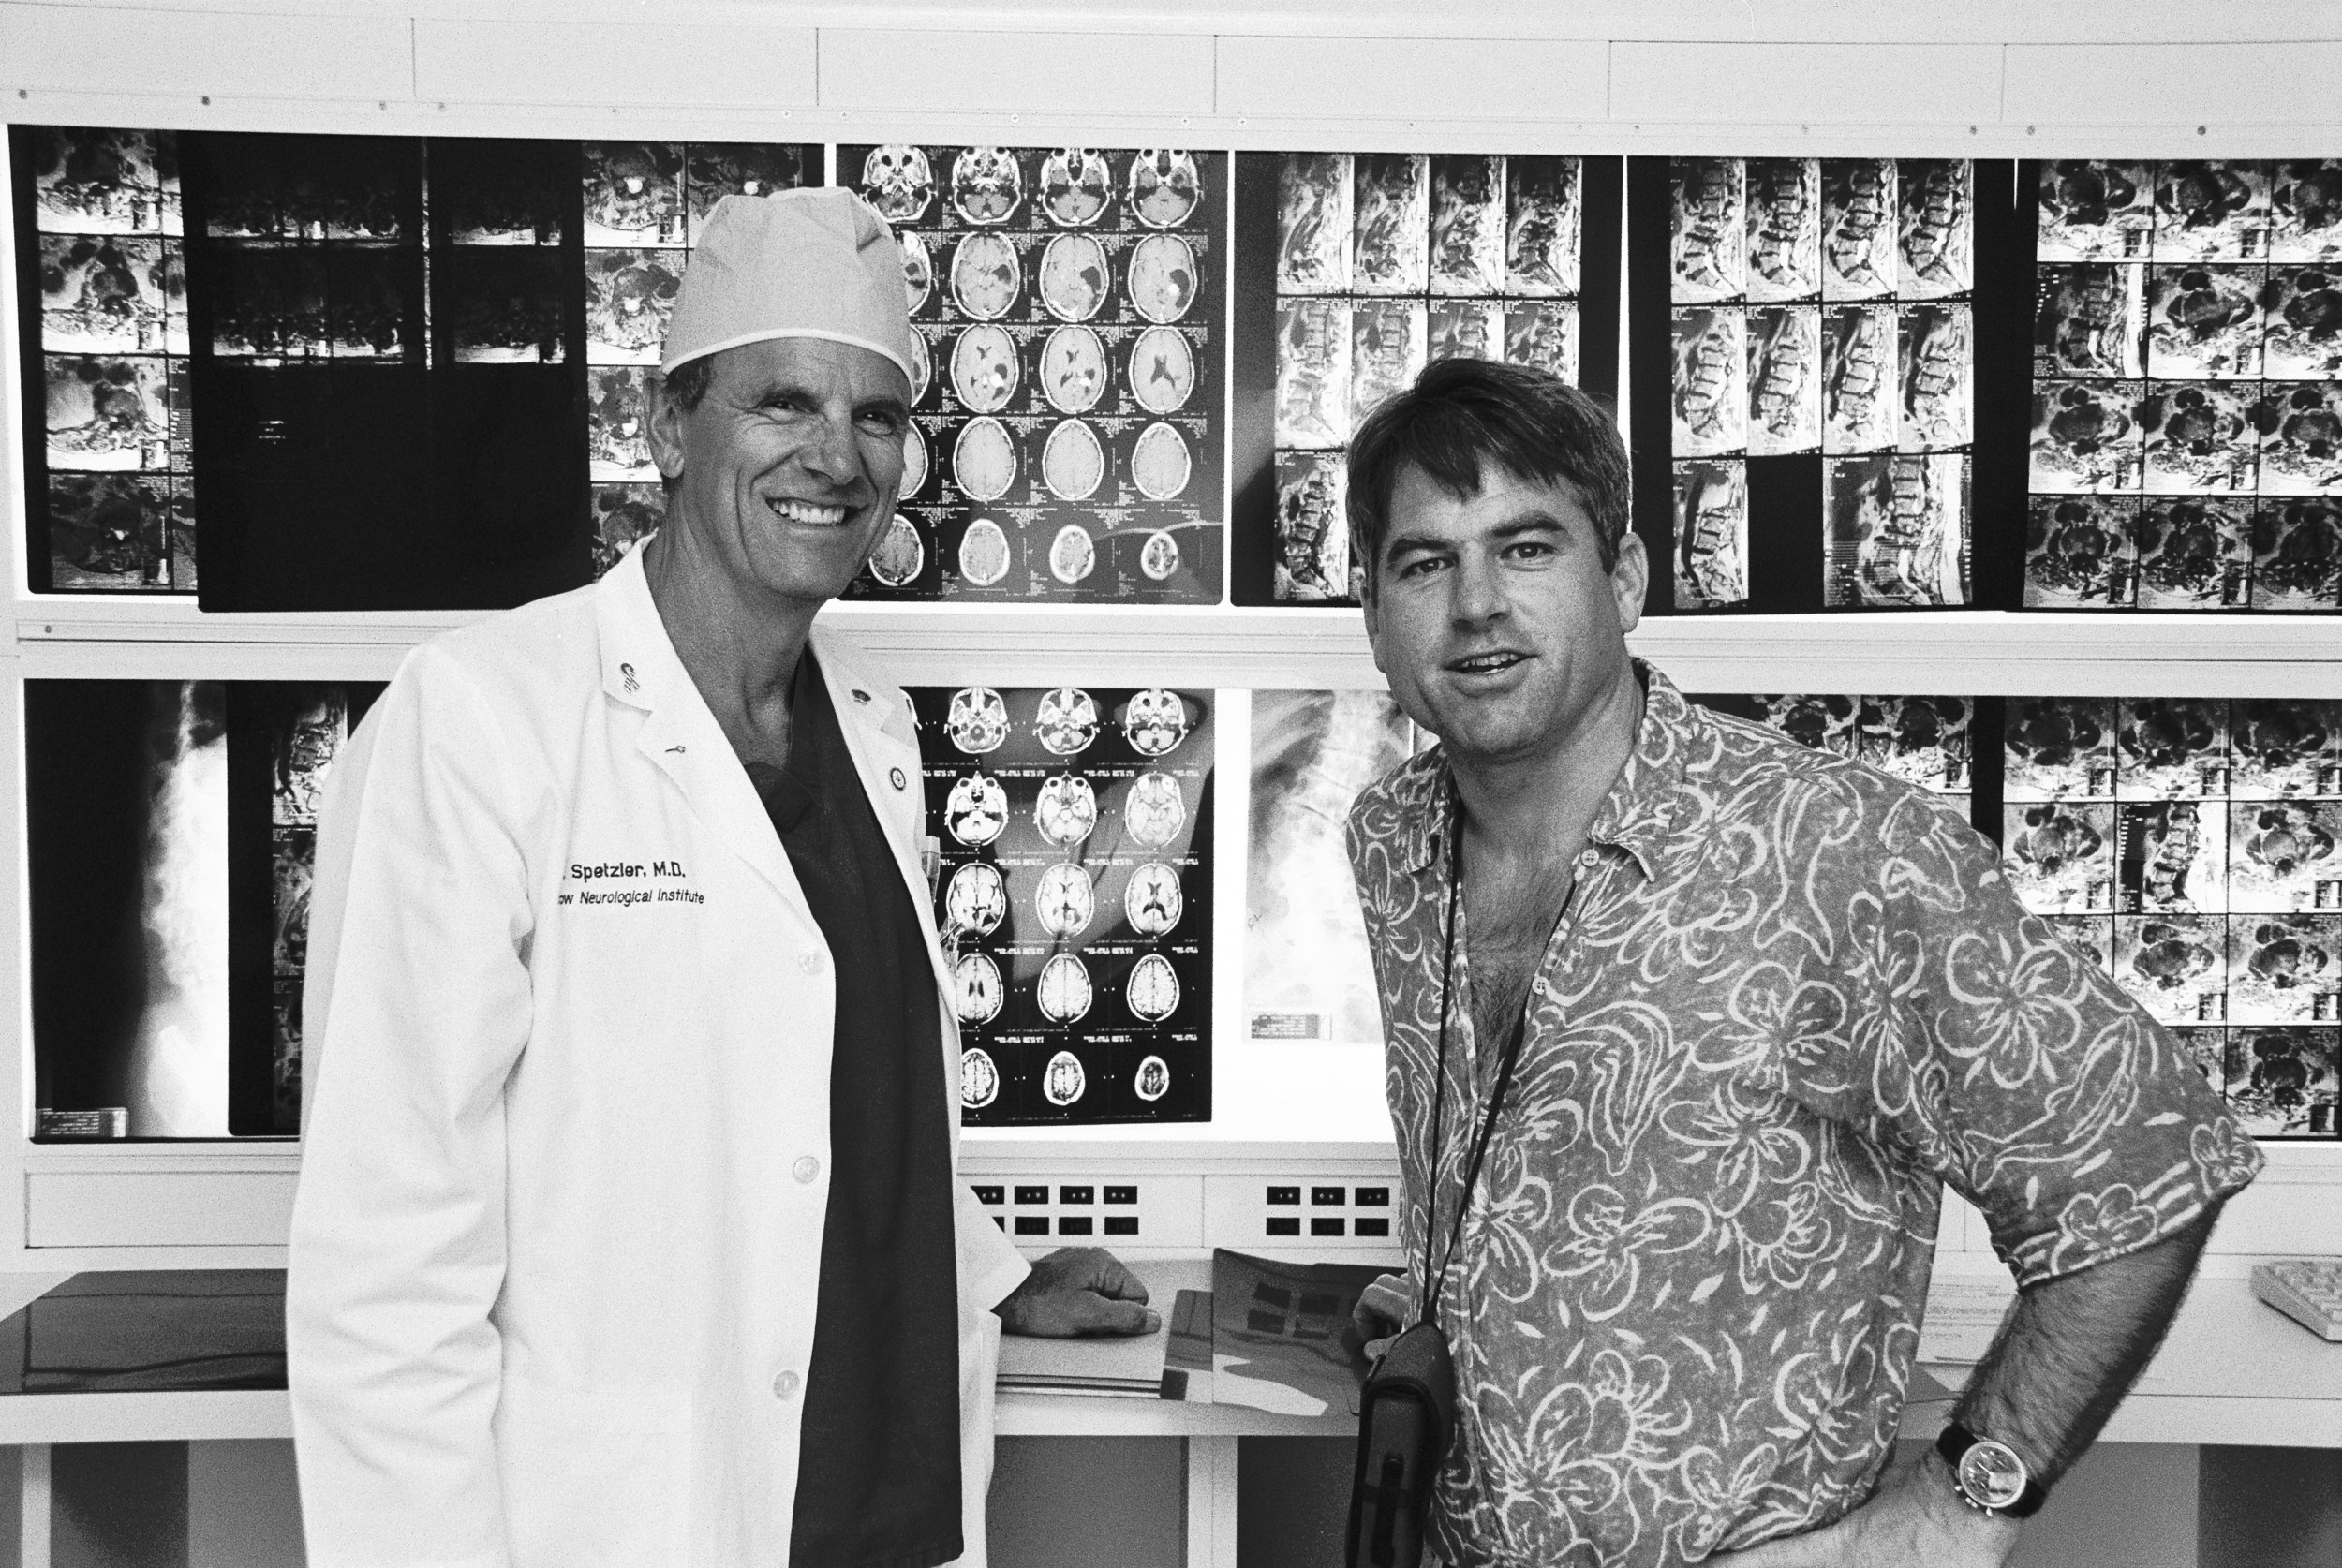 Surgeon and patient reunited 18 months after my brain surgery.